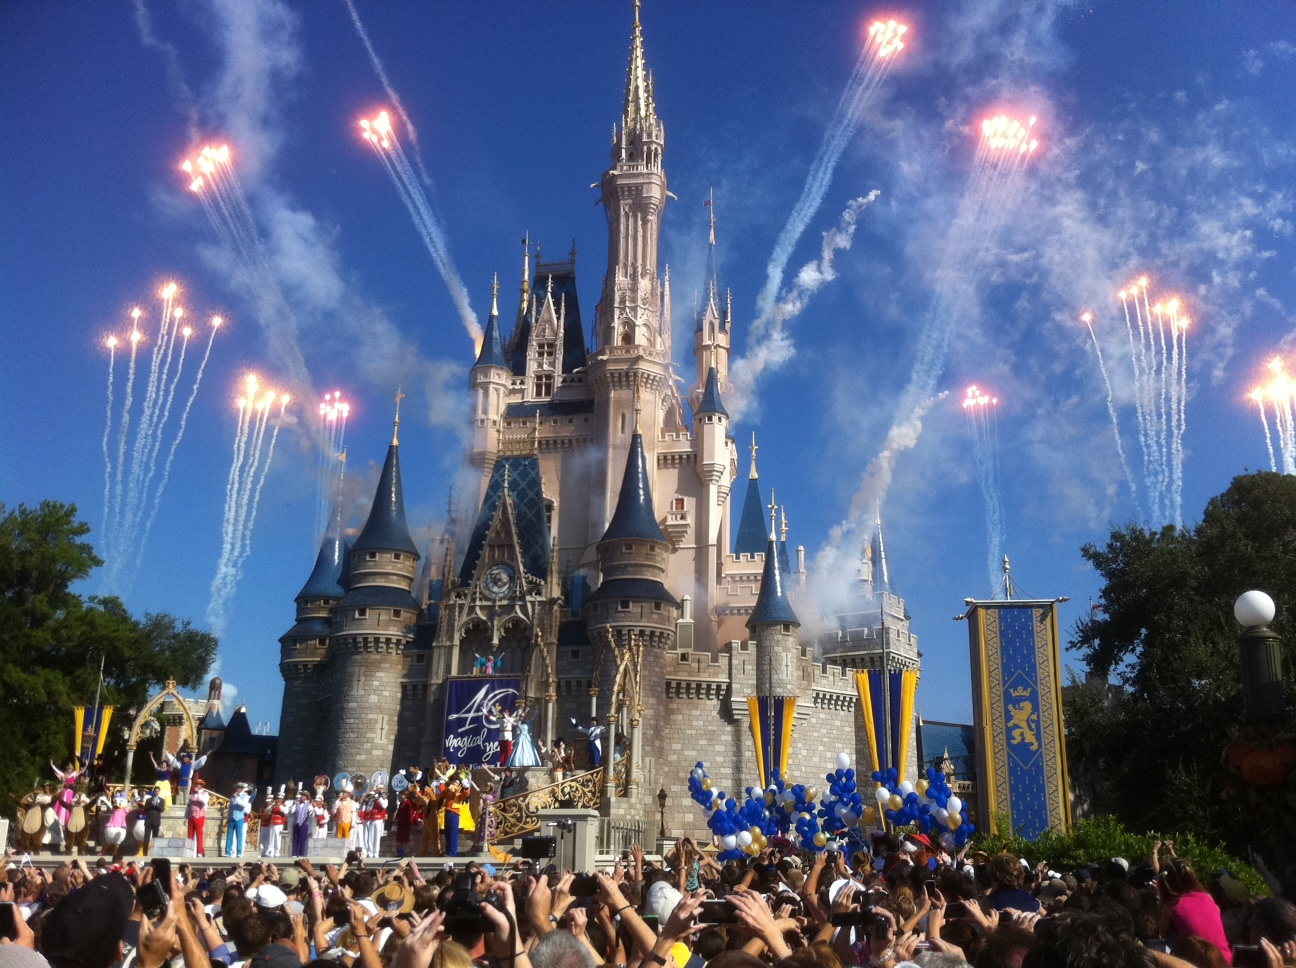 https://disneyworld.disney.go.com/destinations/magic-kingdom/